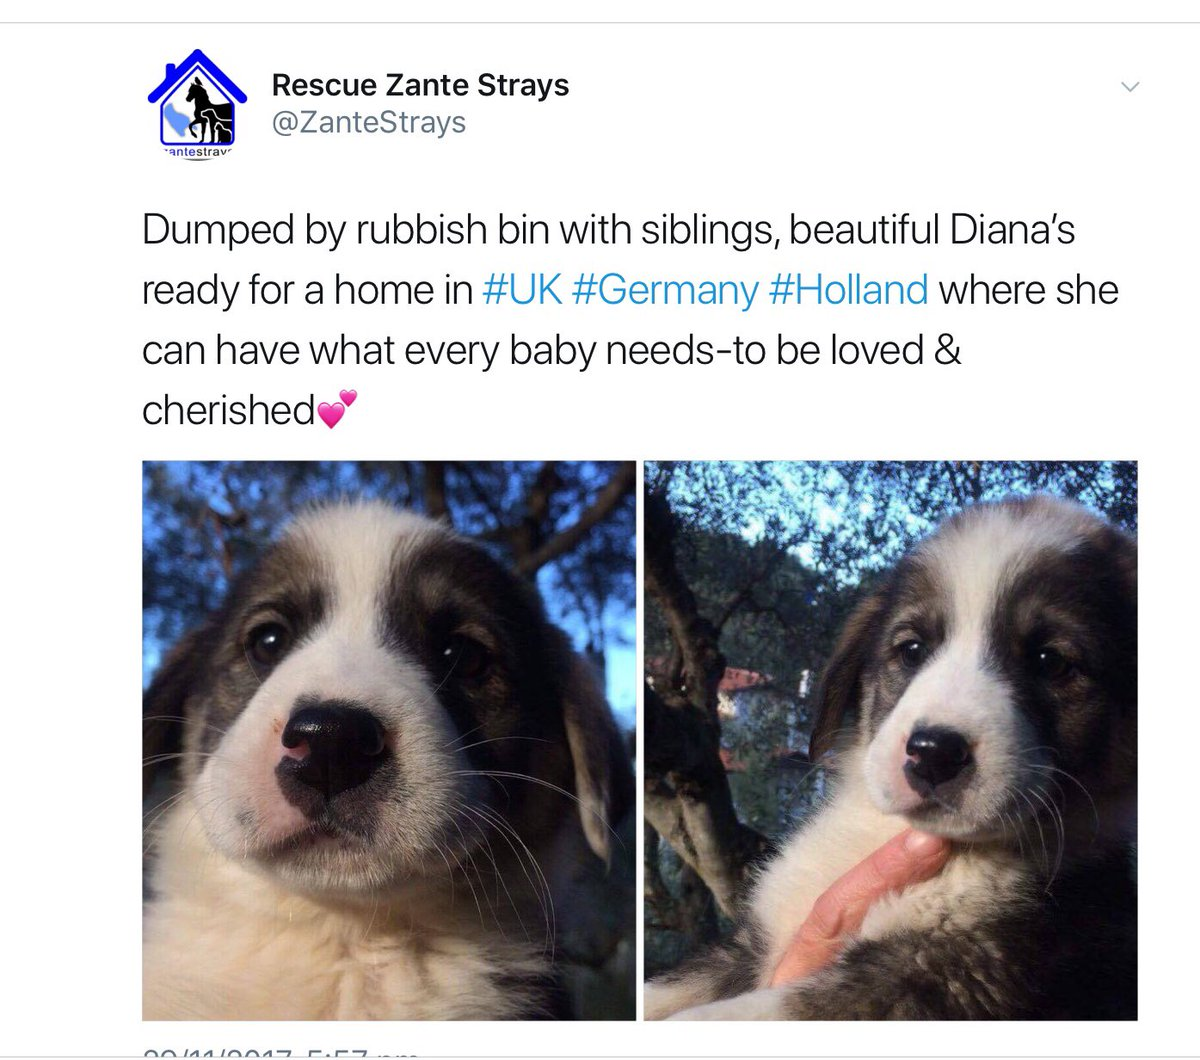 RT @ZanteStrays: ????Diana's reserved???? https://t.co/N2AYzSR7ne